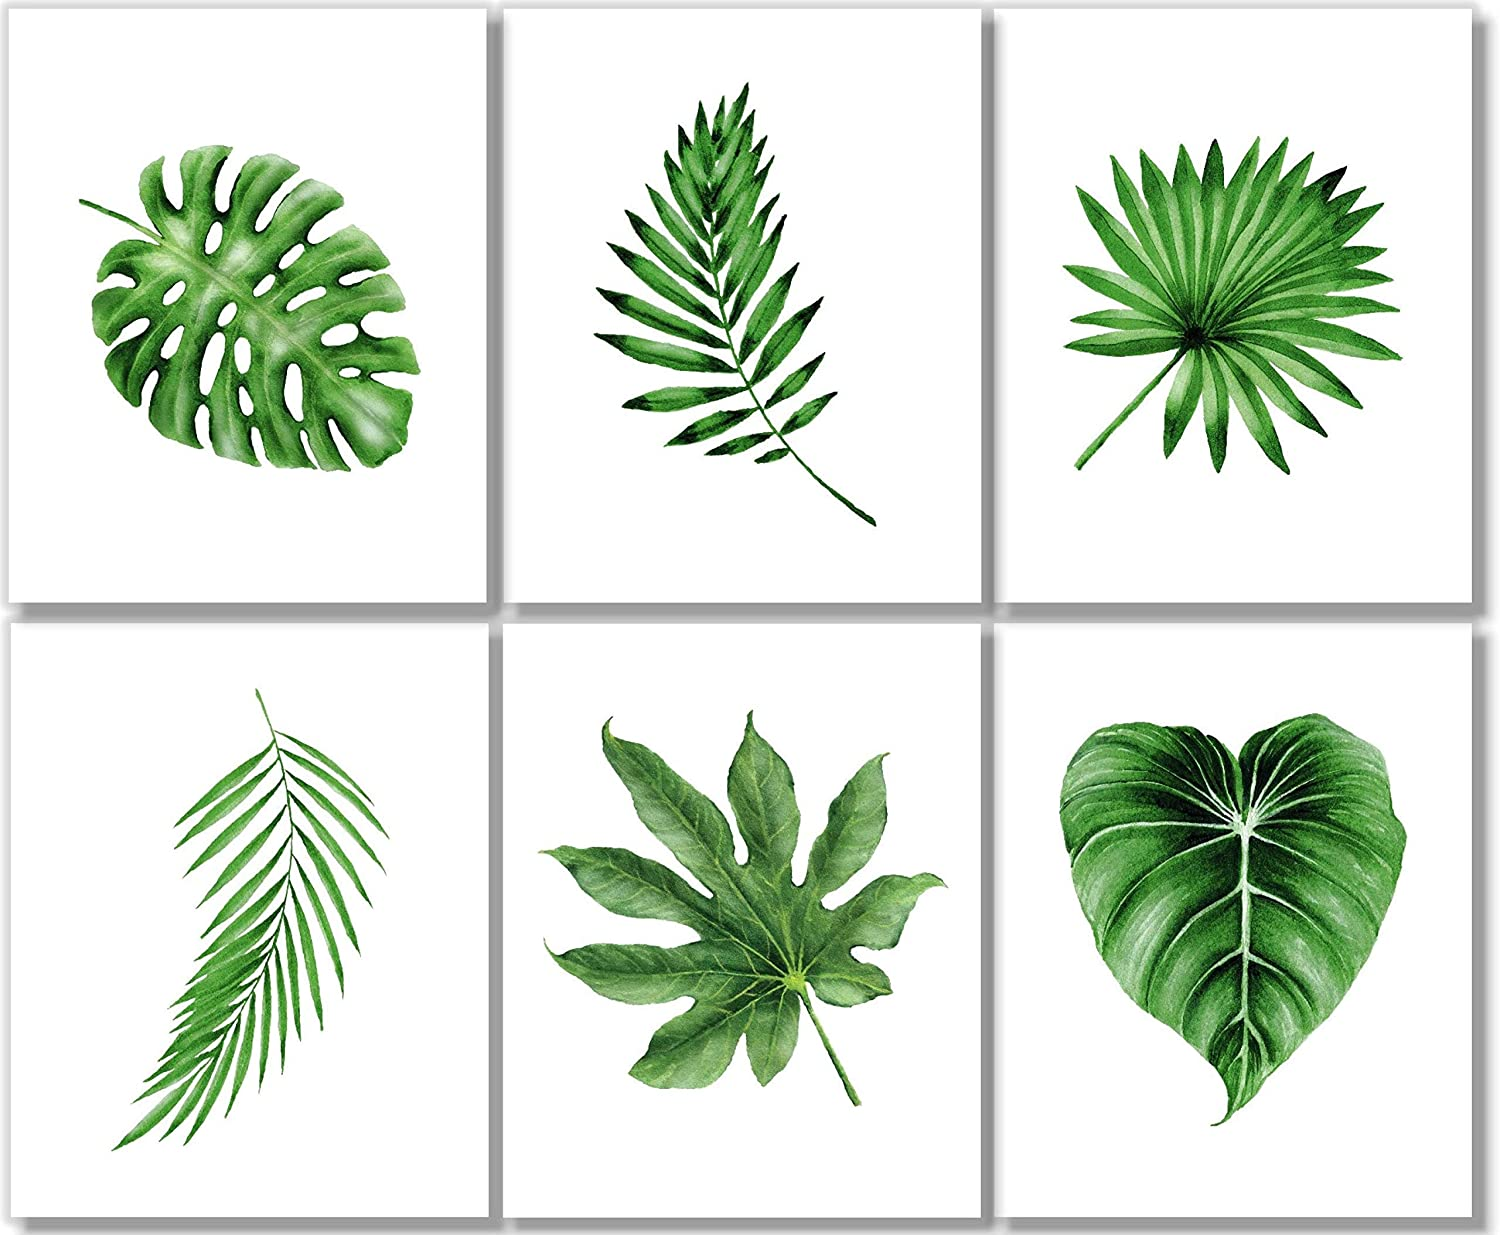 Amazon Com Botanical Prints Wall Art Tropical Leaves Decor Set Of 6 8x10 Unframed Green Leaf Print Set Handmade Art zone modern nordic tropical plant leaves poster prints wall art canvas posters artwork tropical palm leaf art canvas posters prints , tropical plam tree photography painting black. botanical prints wall art tropical leaves decor set of 6 8x10 unframed green leaf print set